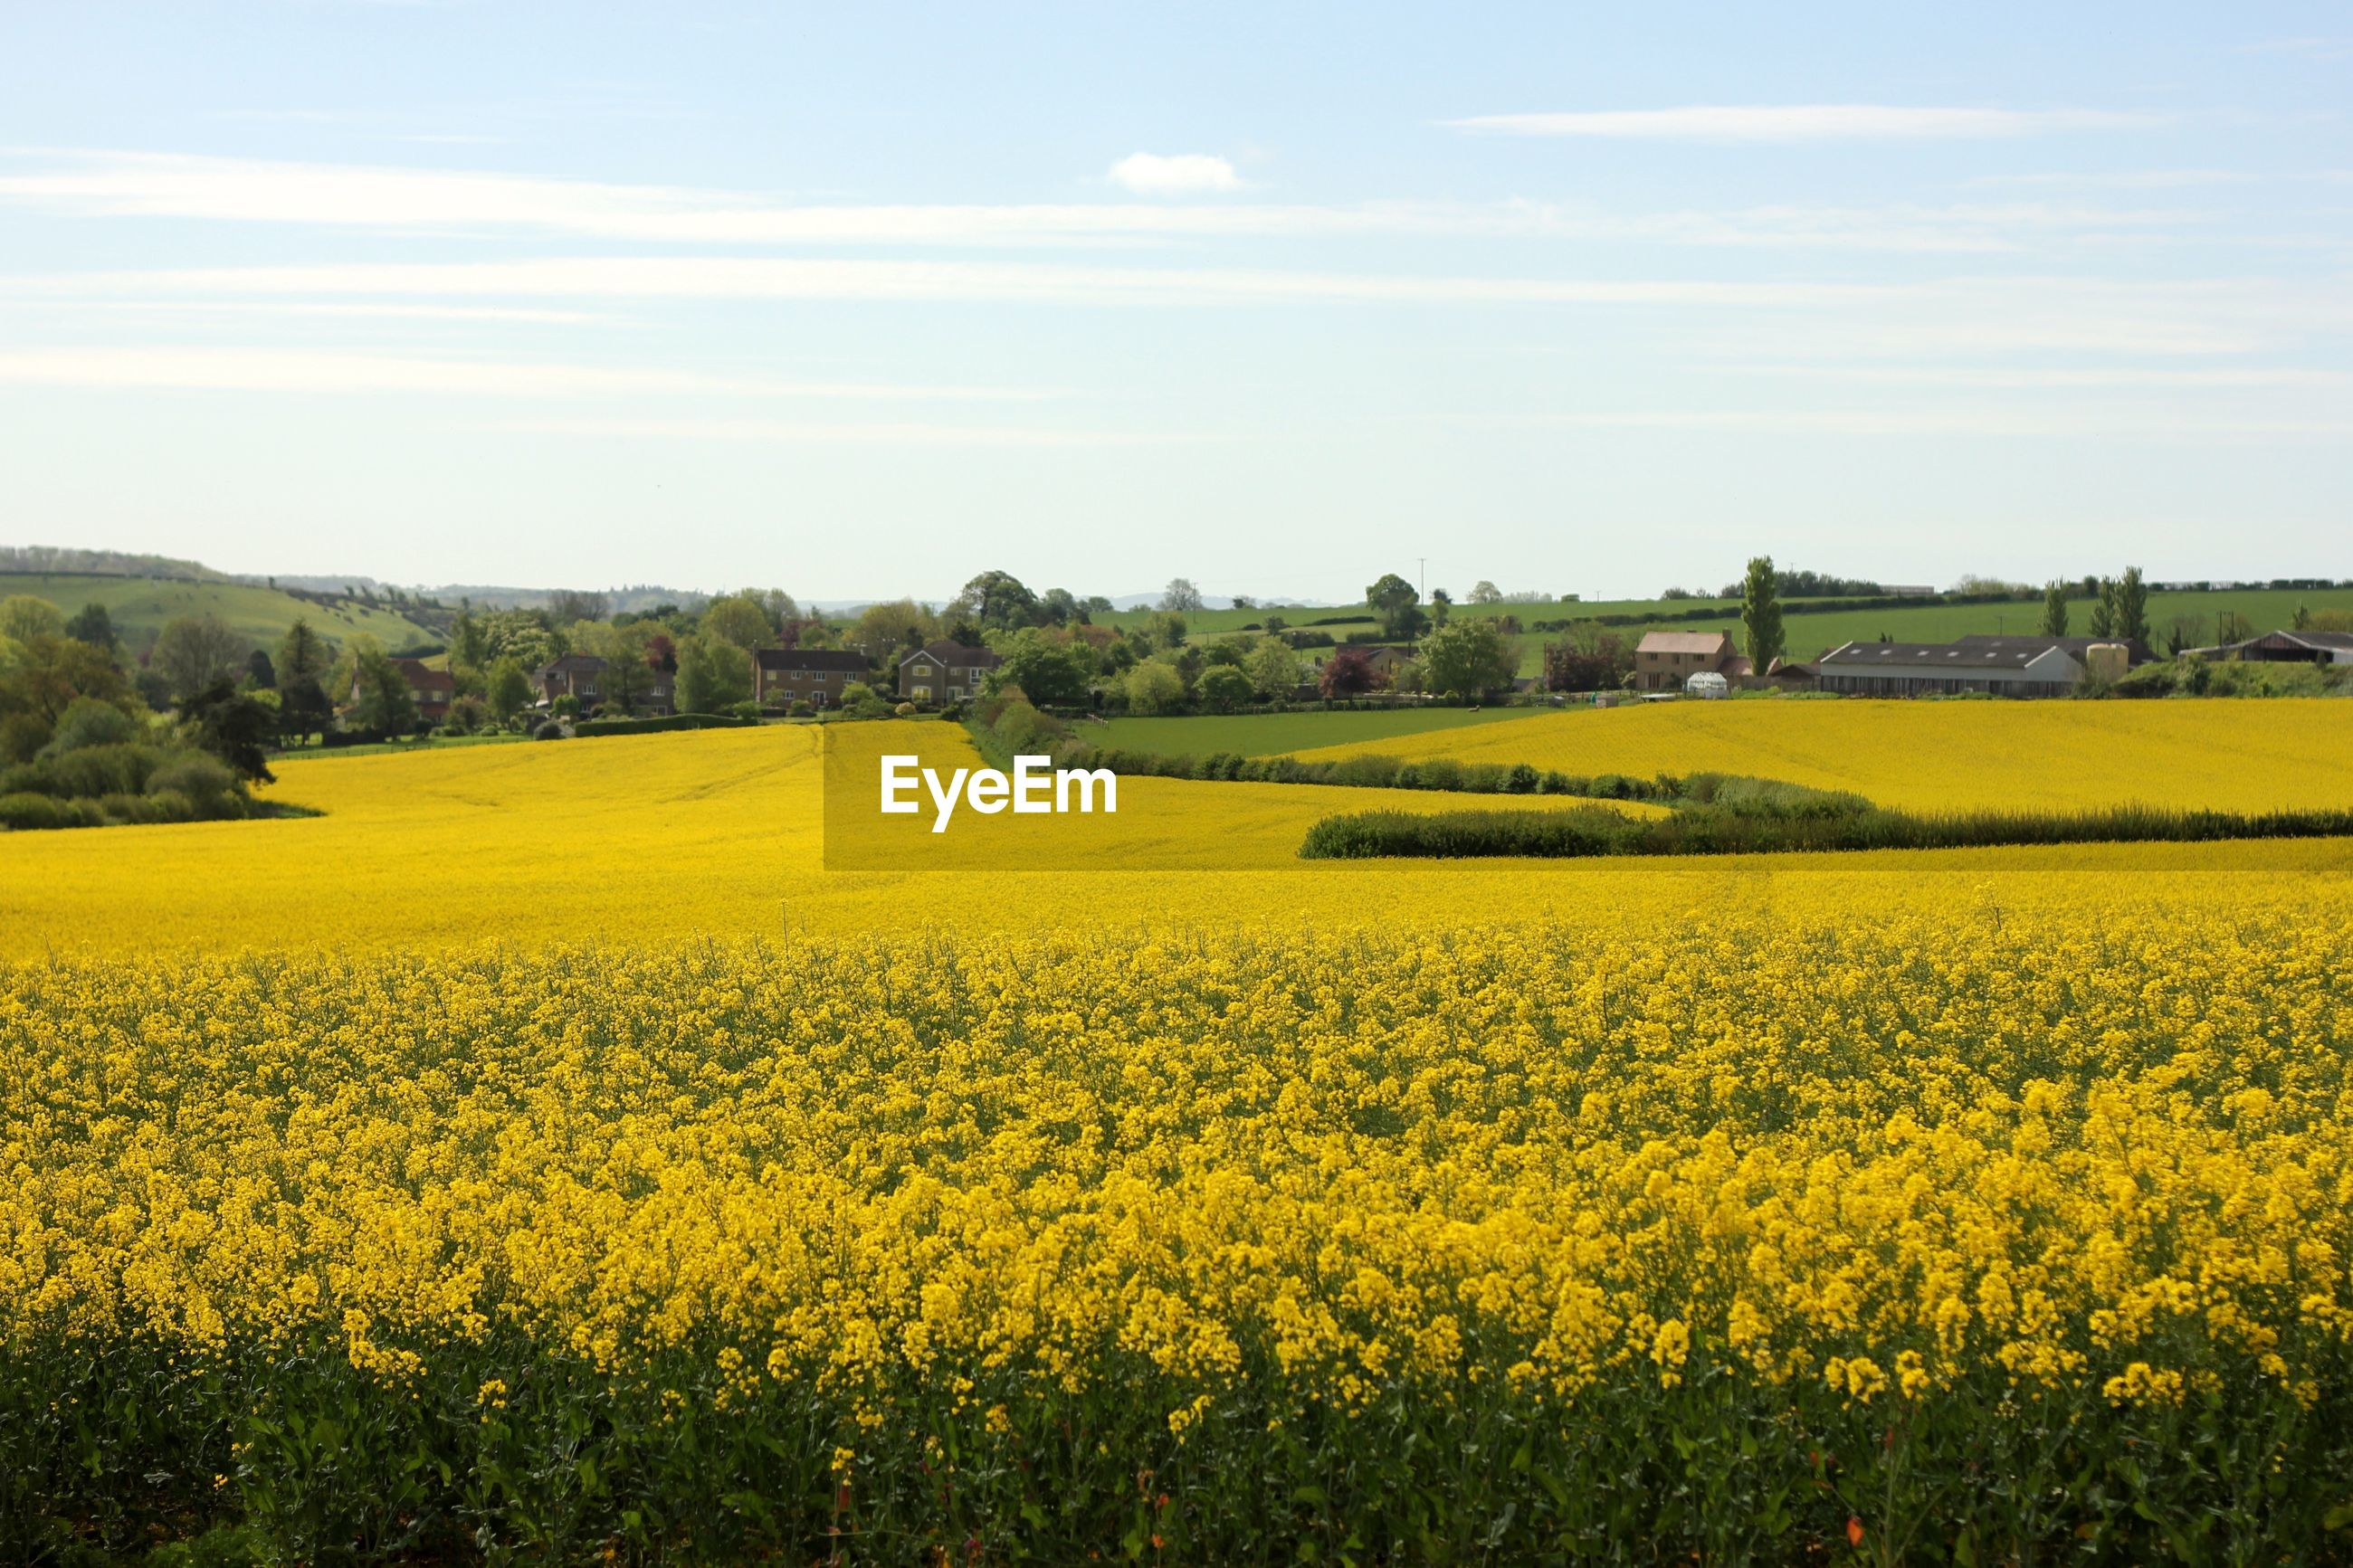 yellow, agriculture, oilseed rape, field, crop, farm, rural scene, beauty in nature, landscape, nature, tranquil scene, cultivated land, flower, scenics, tranquility, day, no people, mustard plant, growth, cultivated, outdoors, sky, springtime, tree, freshness